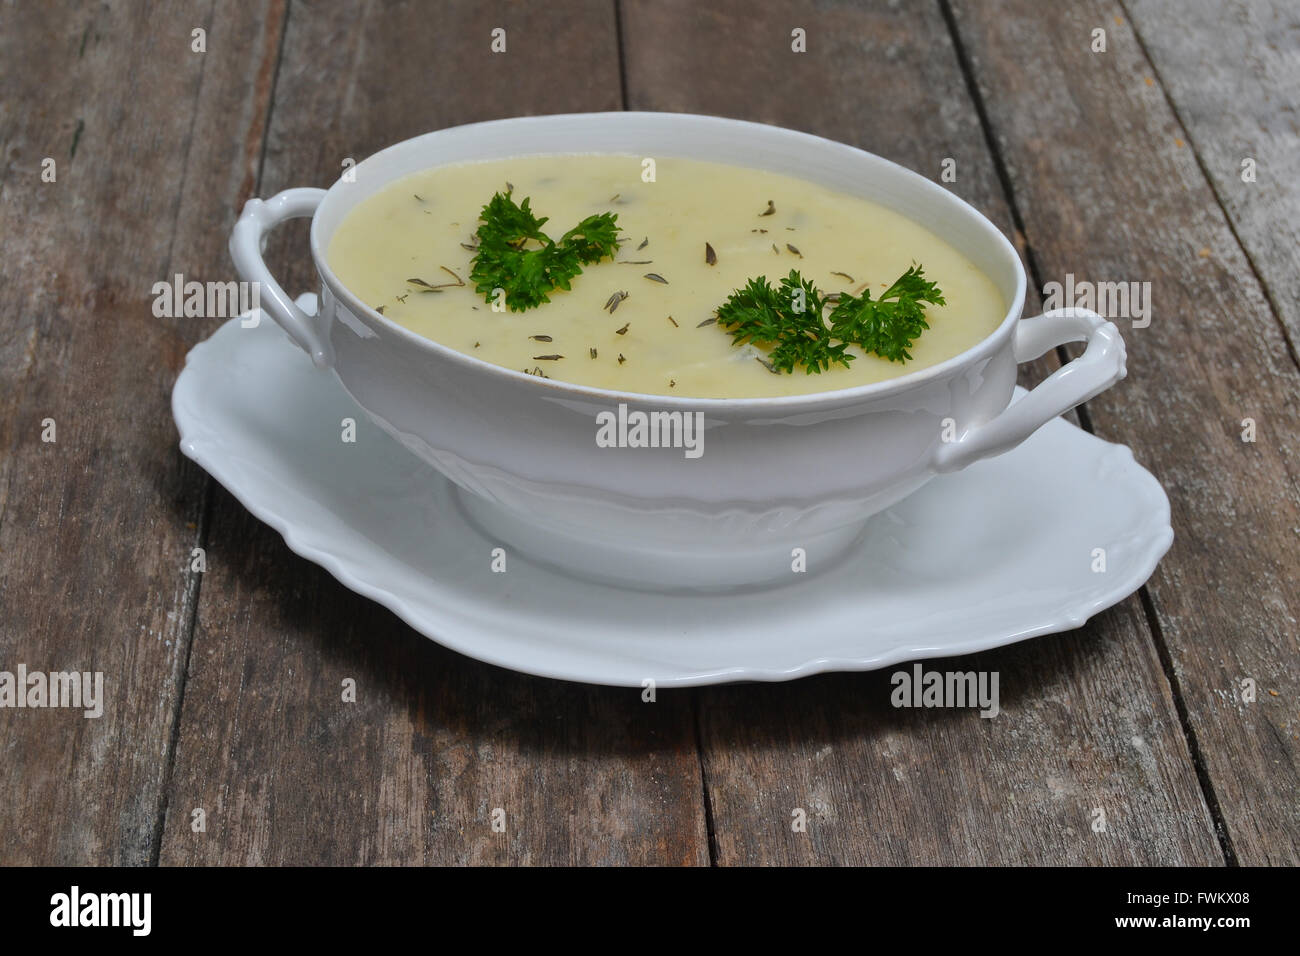 mashed potato garnish with parsley in a bowl on rustic wood - Stock Image